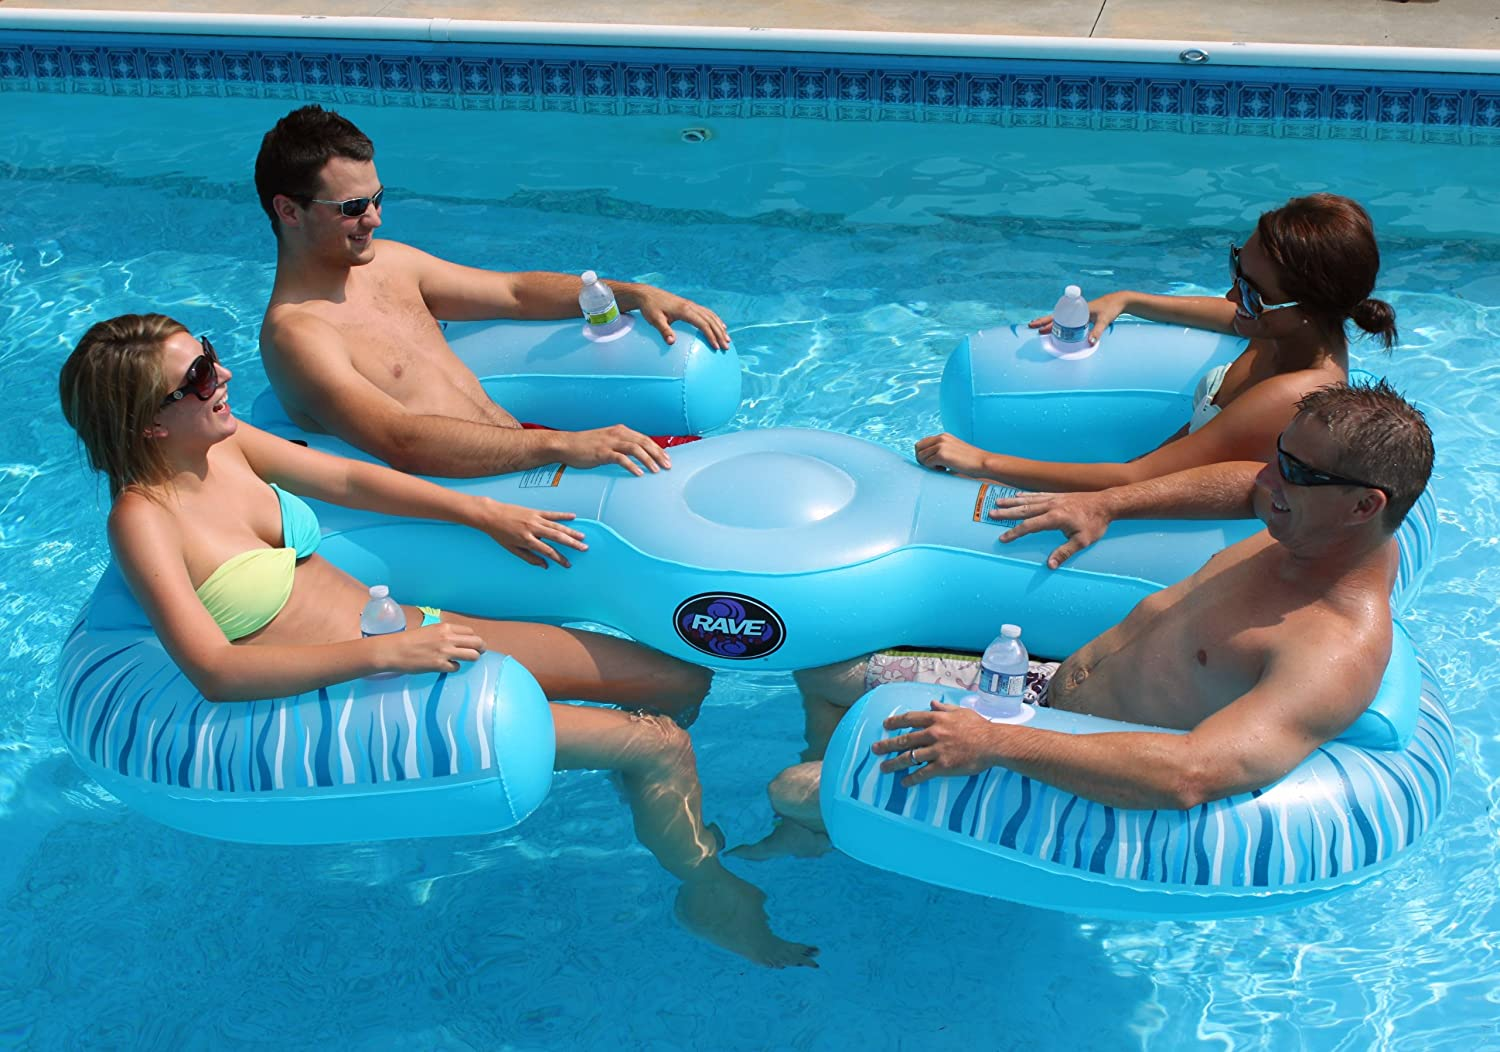 Amazon RAVE Sports Paradise Lounge Floating Lounger Seats Outdoors